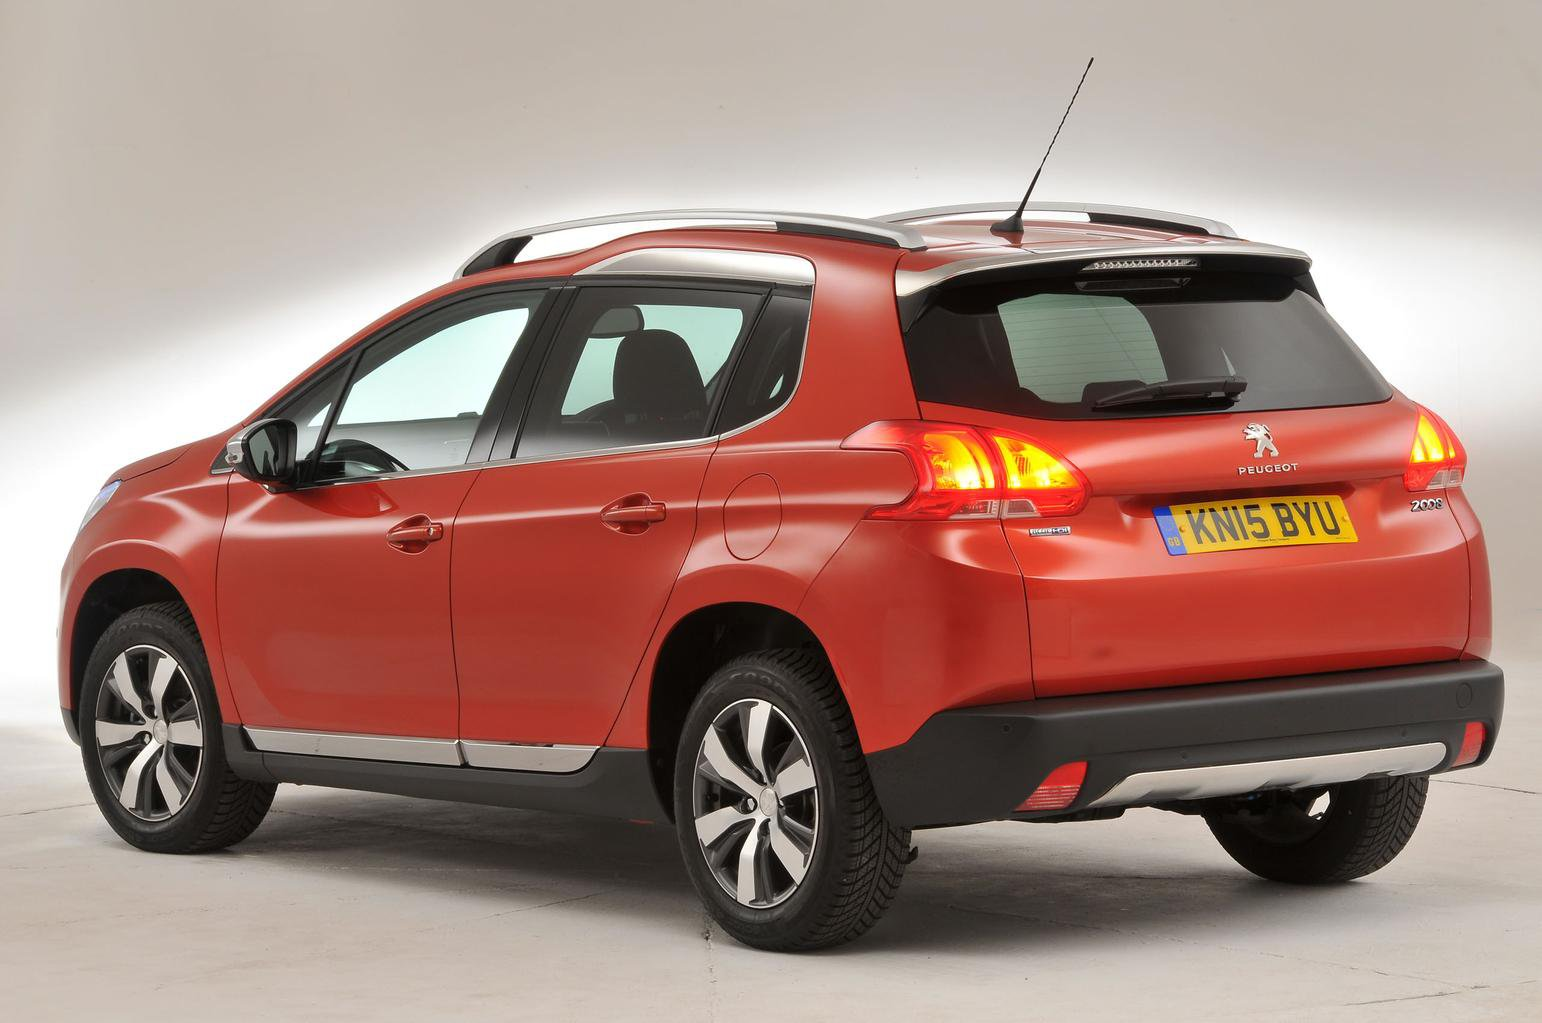 5 reasons to buy a Peugeot 2008